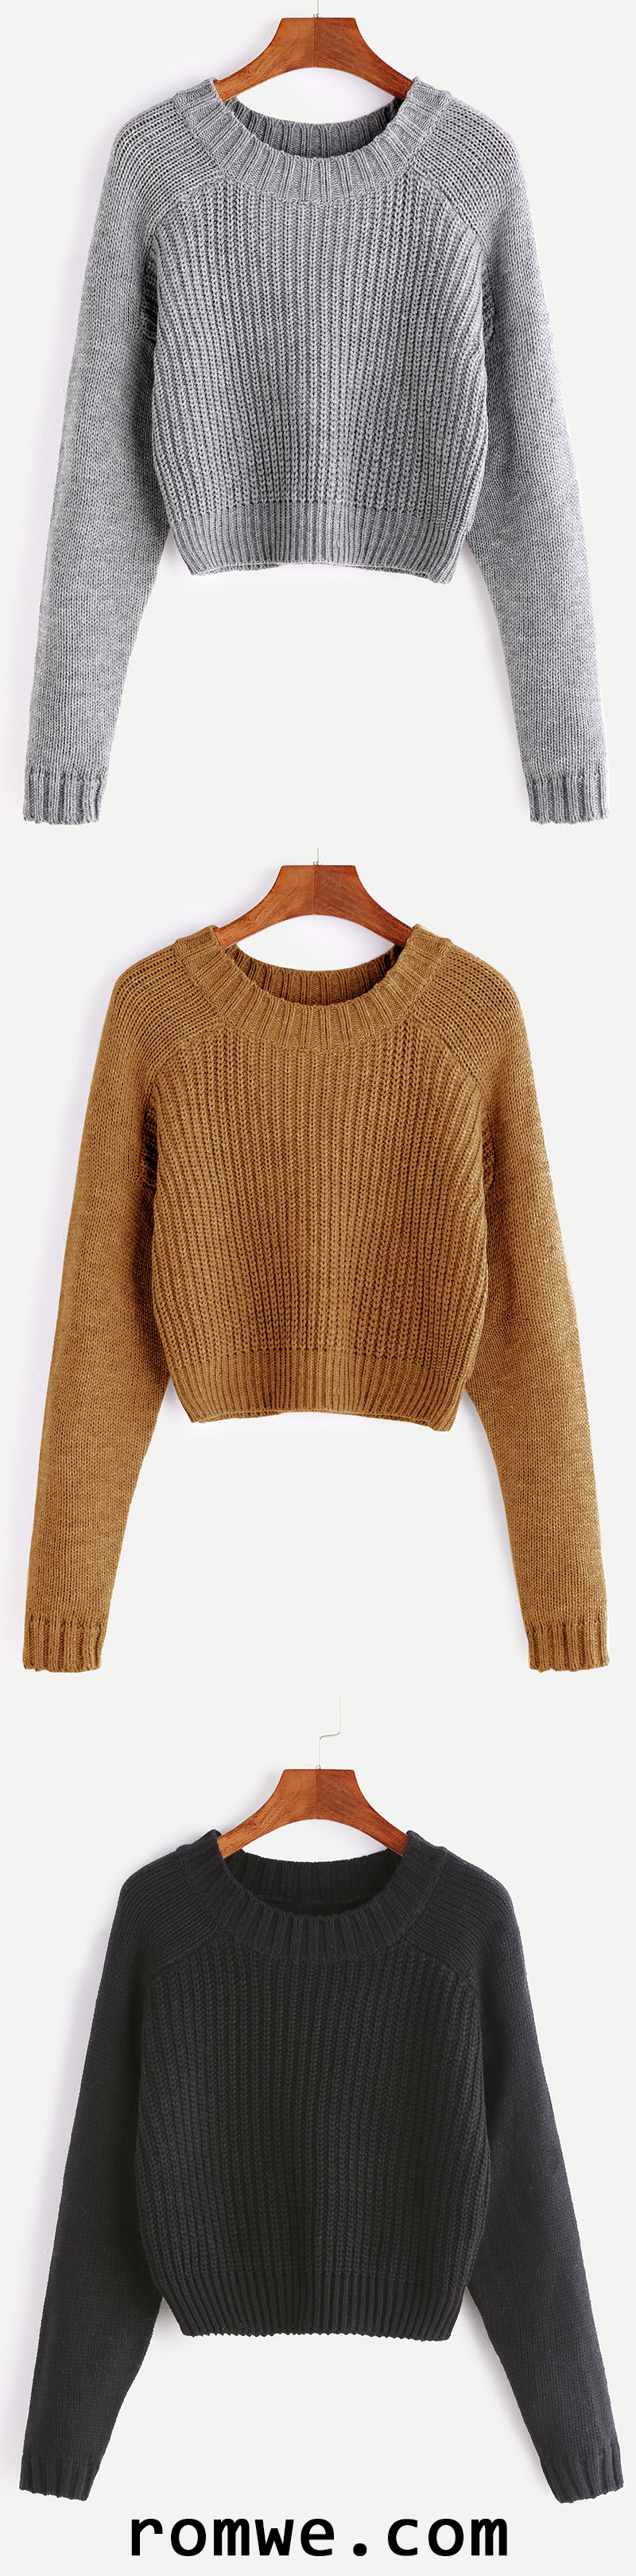 Raglan Sleeve Crop Sweater